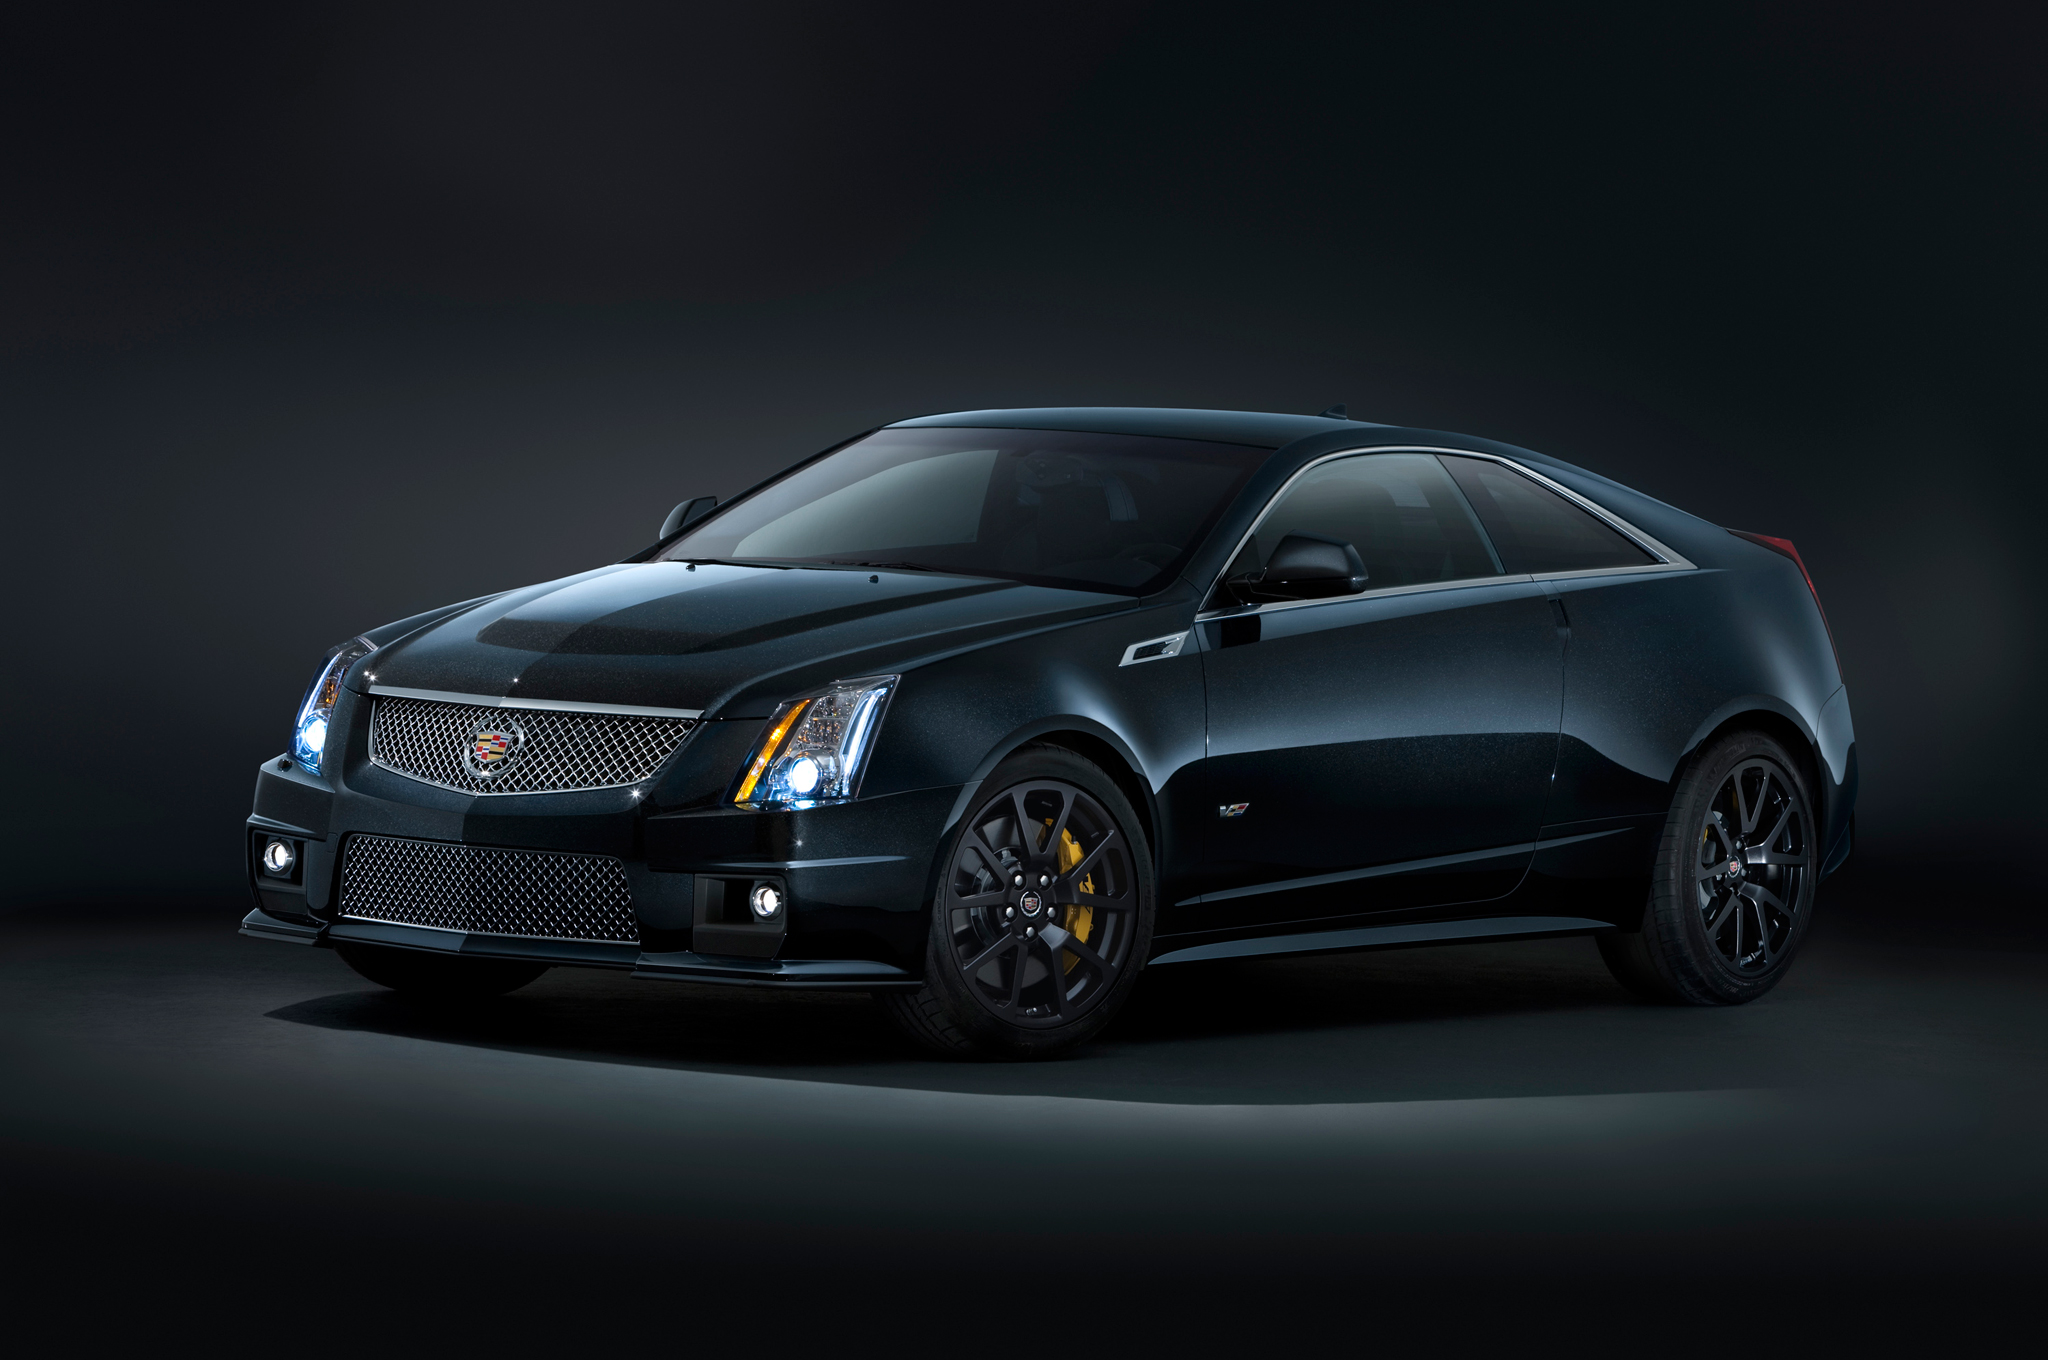 2013 Cadillac Cts-v Coupe #17